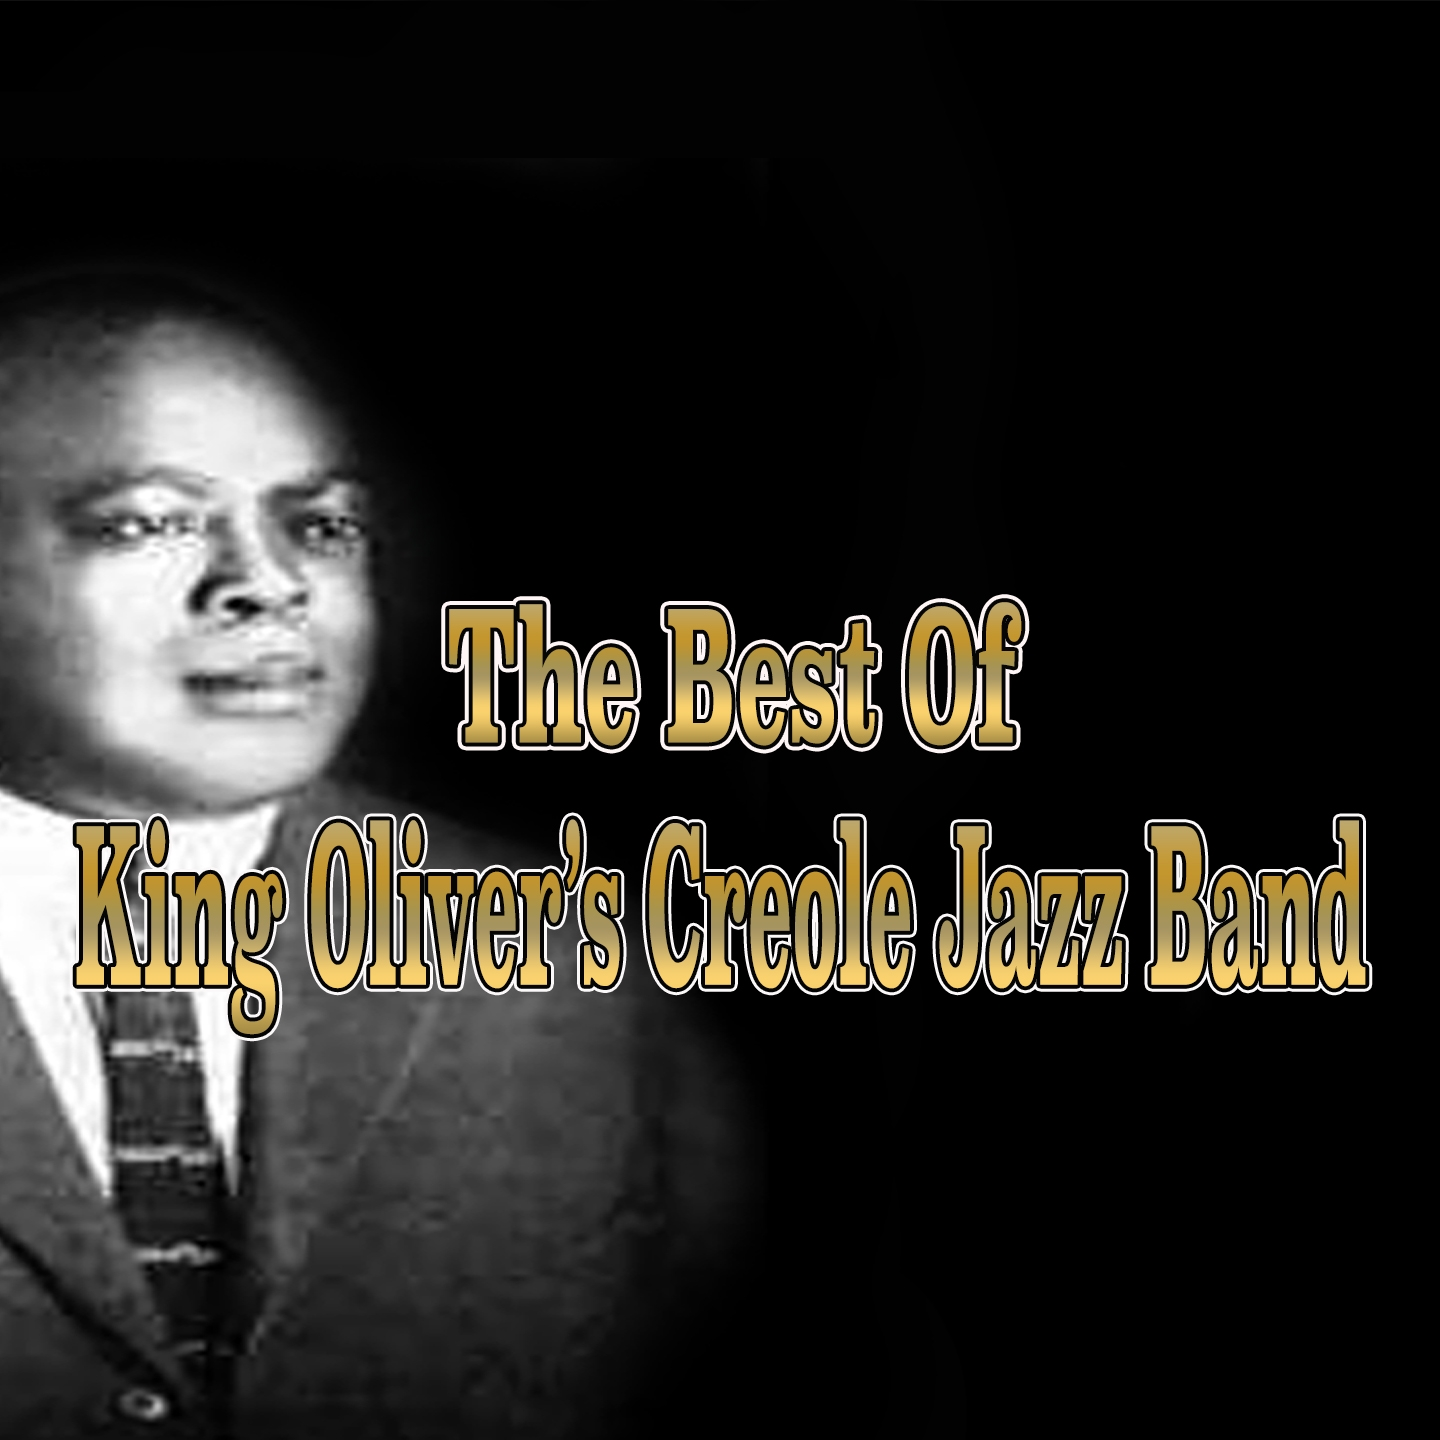 The Best of King Oliver's Creole Jazz Band